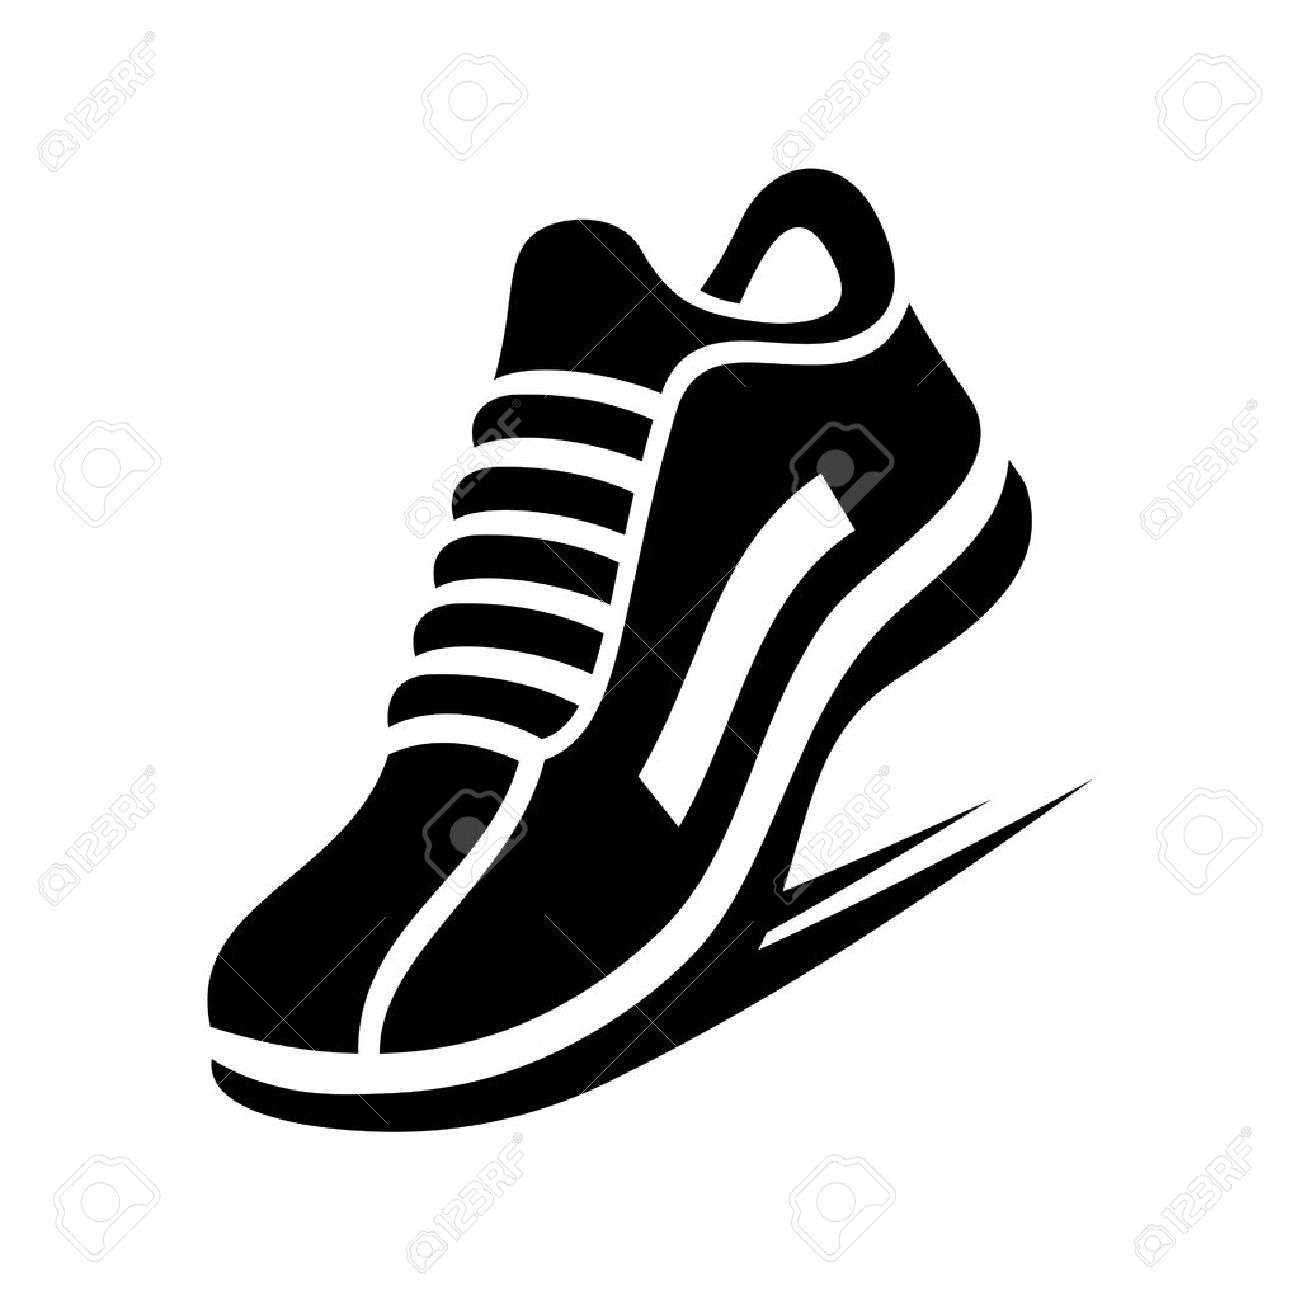 running shoe icon on white background royalty free cliparts vectors rh 123rf com running shoe free vector download running shoe track vector